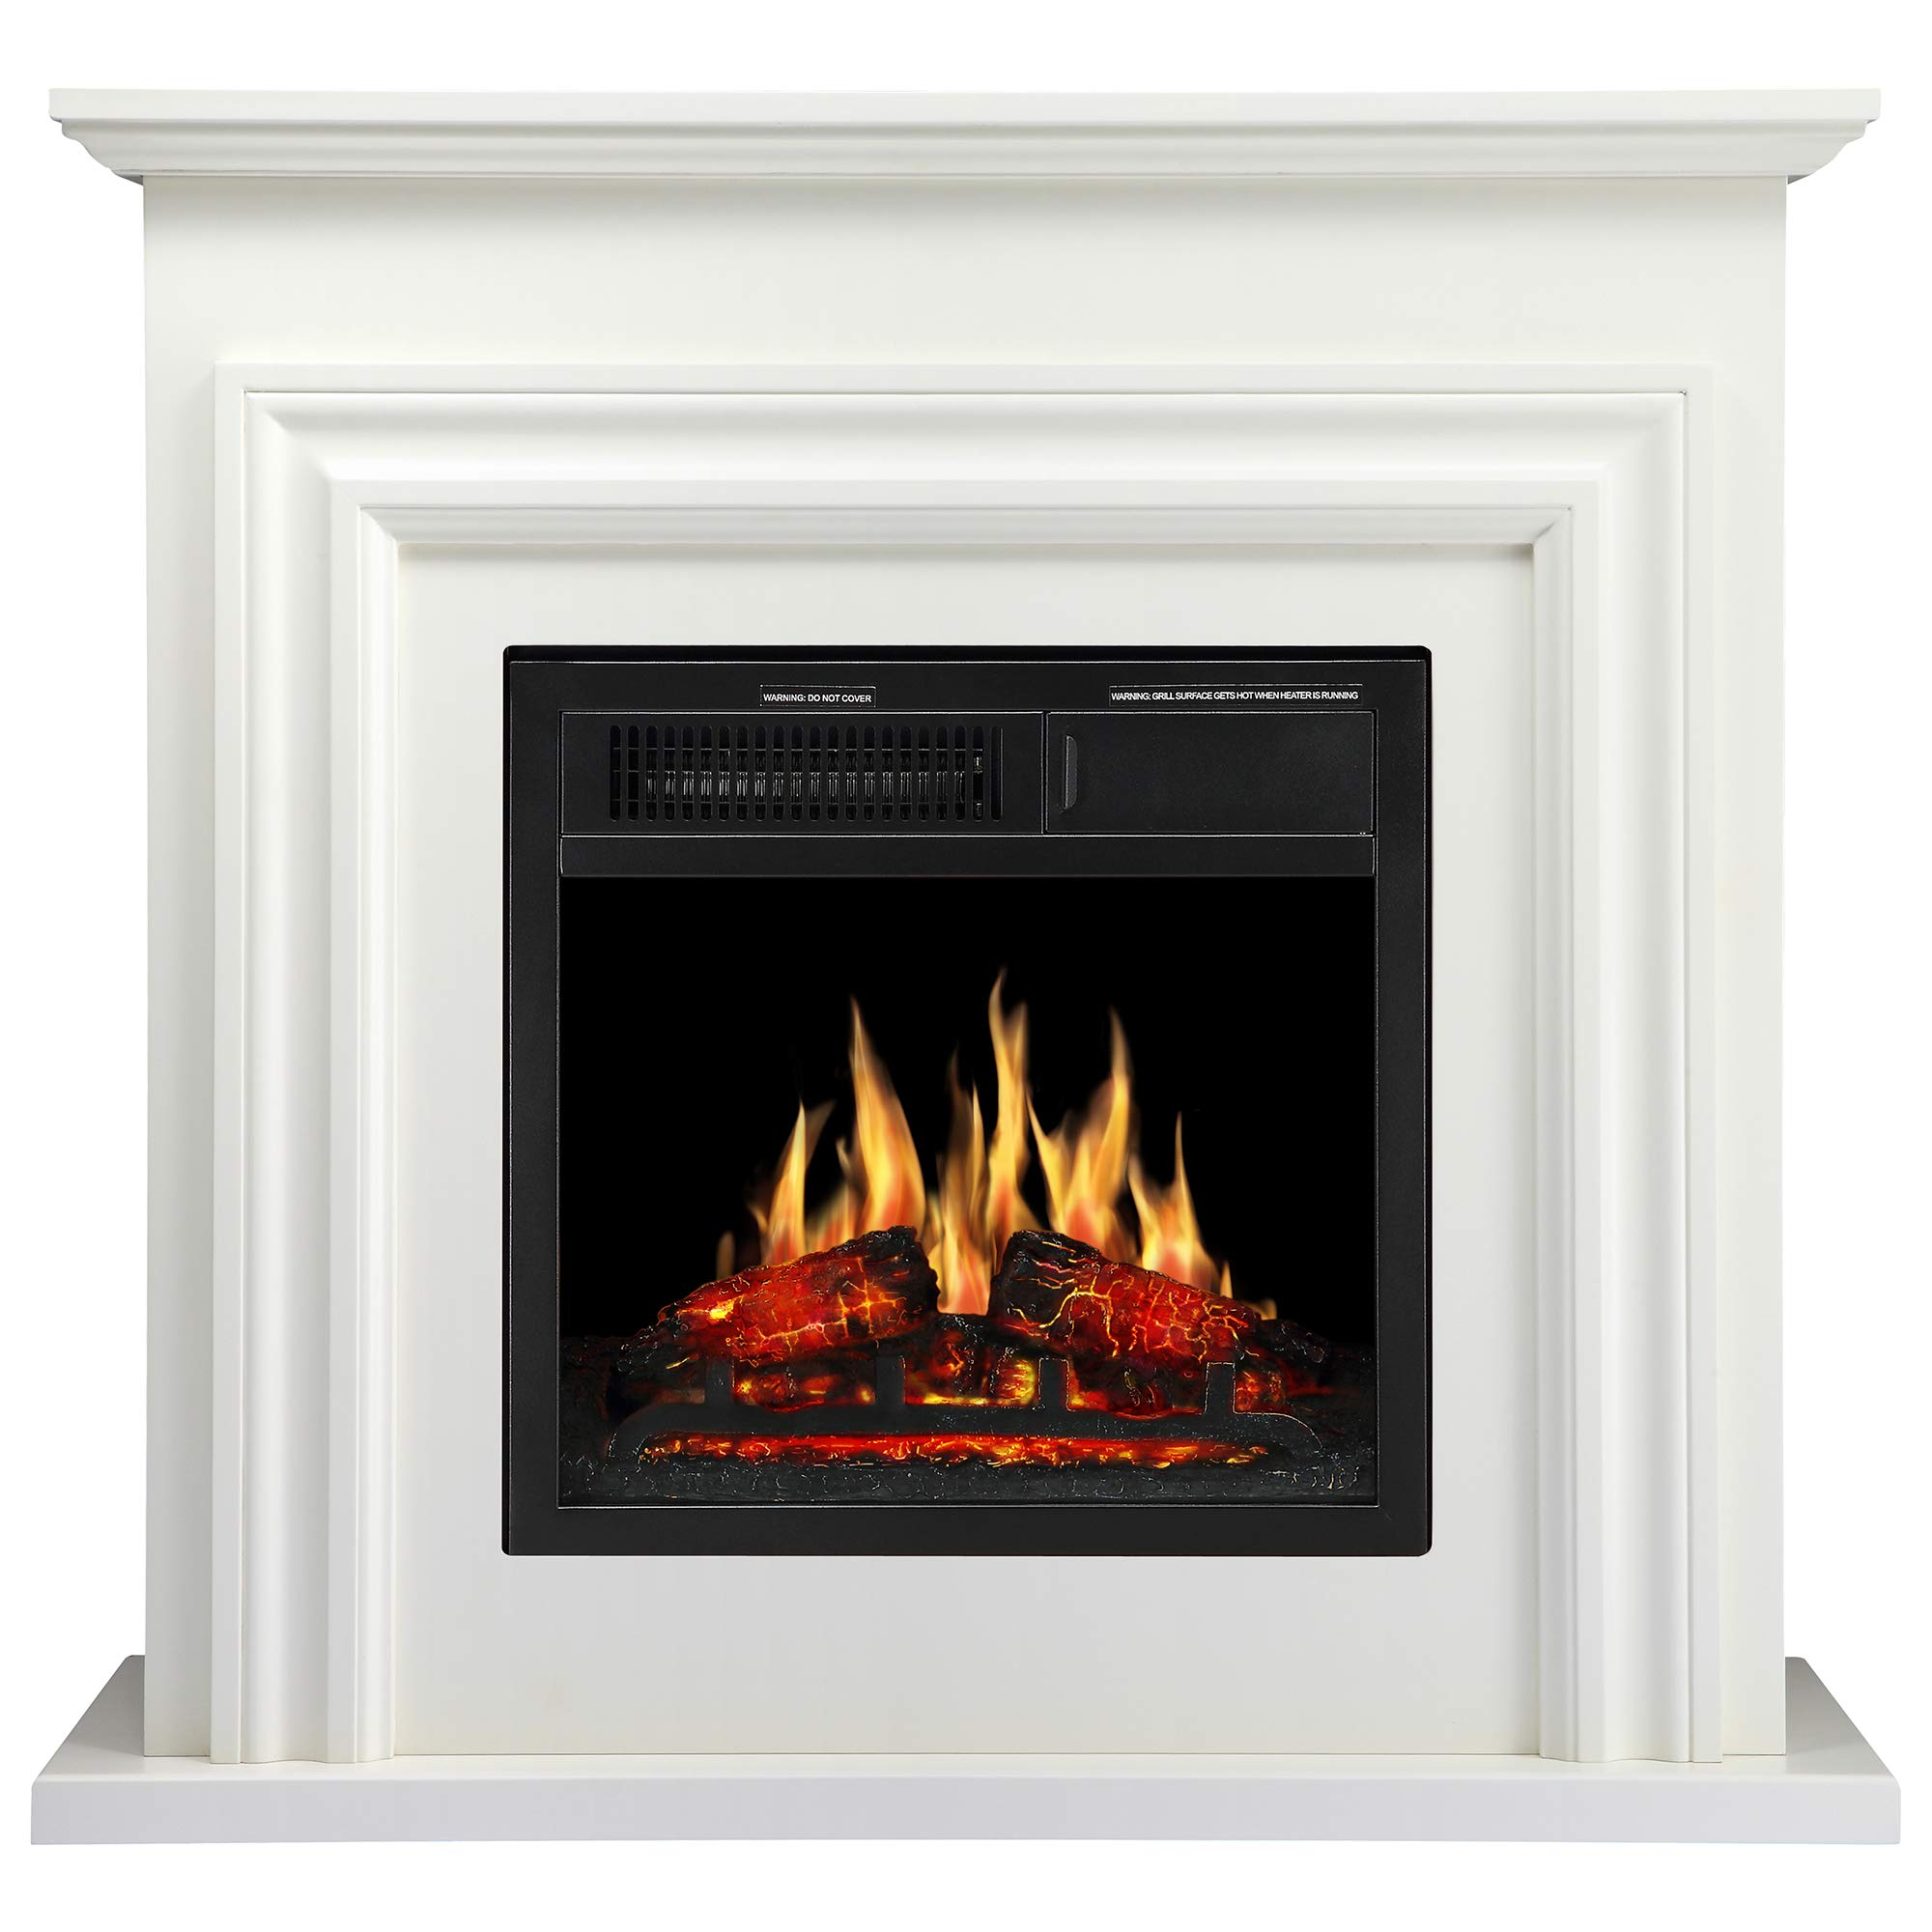 JAMFLY 36'' Wood Electric Fireplace Mantel Package Freestanding Heater Corner Firebox with Log Hearth and Remote Control,750-1500W Ivory White Finish by JAMFLY